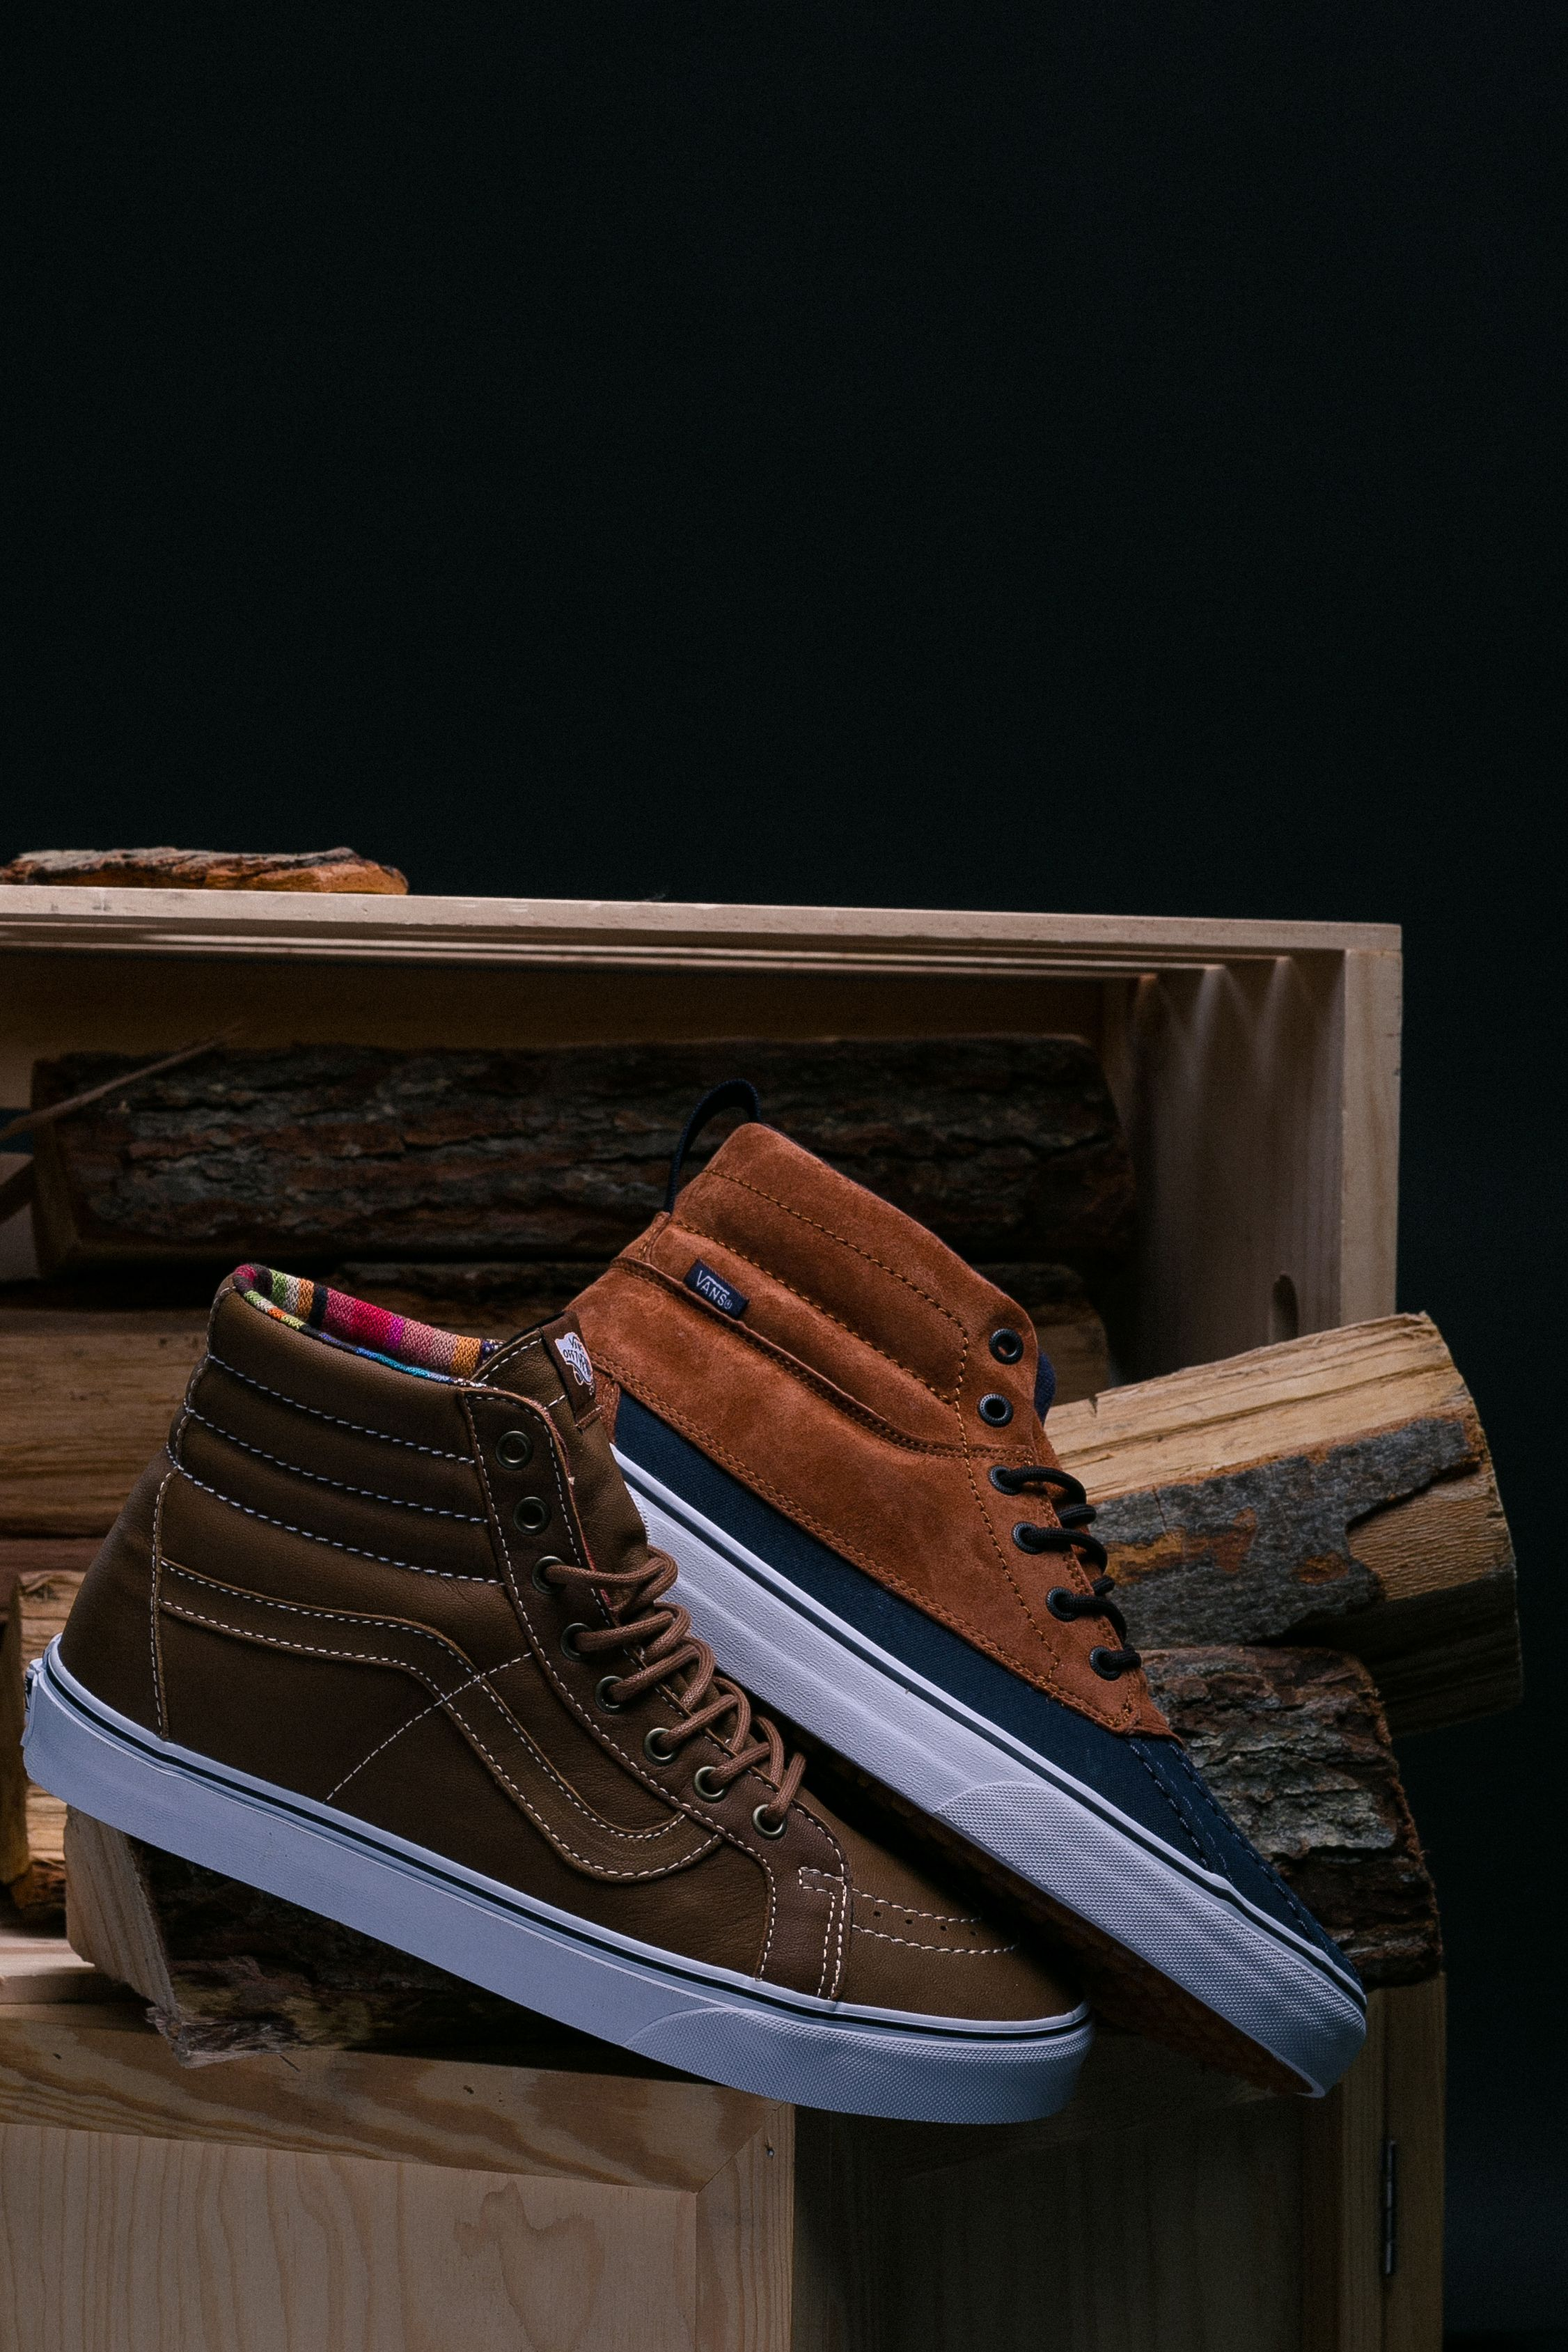 fd31b5dce2 Vans' new Sk8-Hi Reissue brings the vintage vibes, while the duck ...